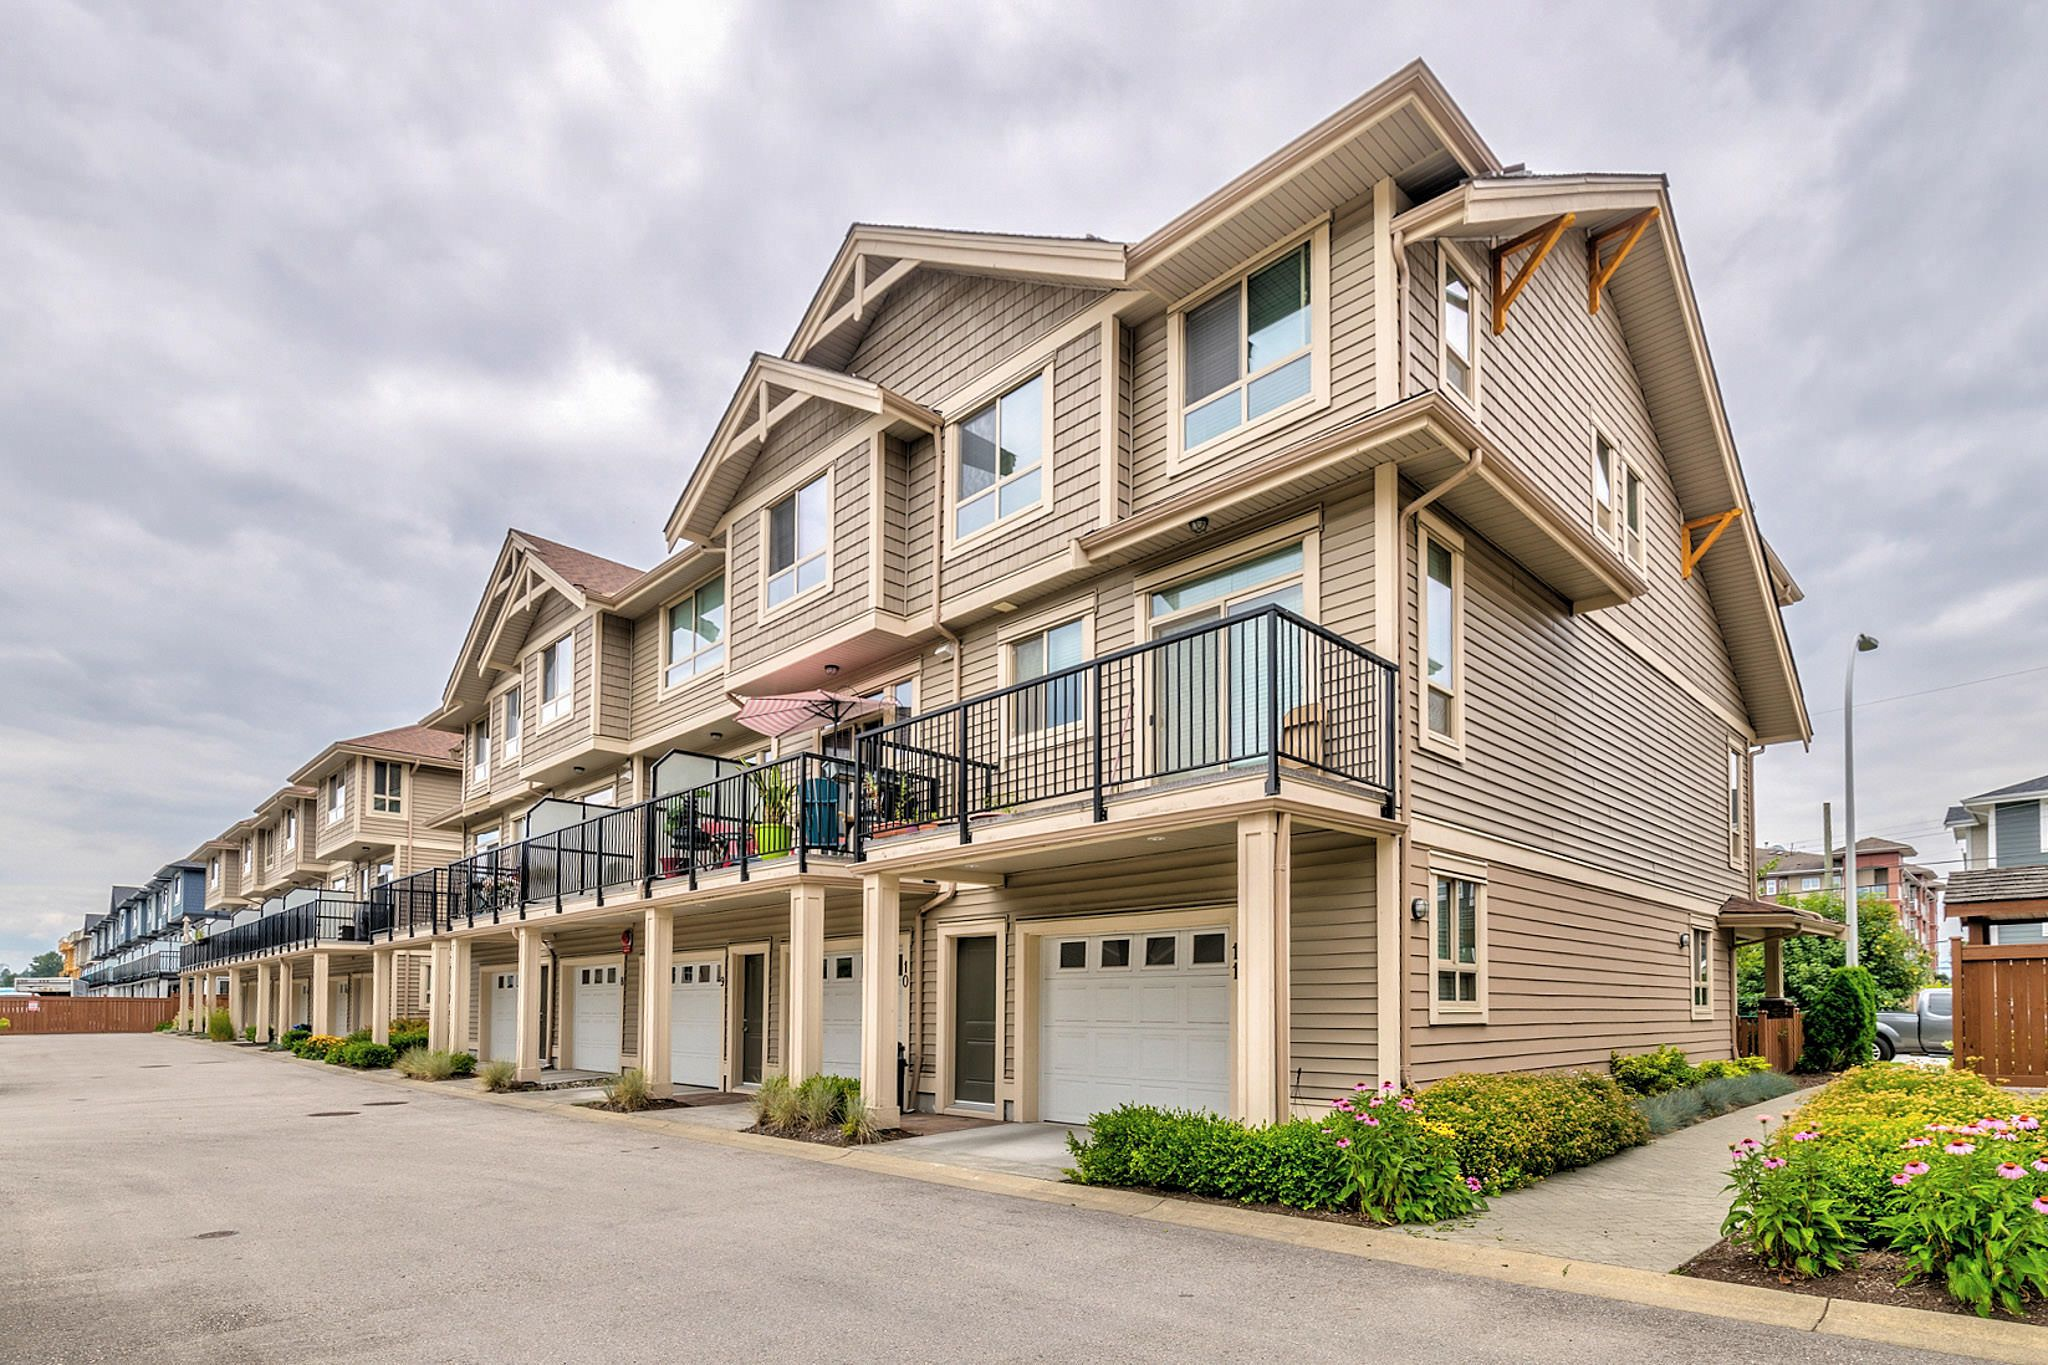 Photo 22: Photos: 10 19742 55A Street in Langley: Langley City Townhouse for sale : MLS®# R2388093